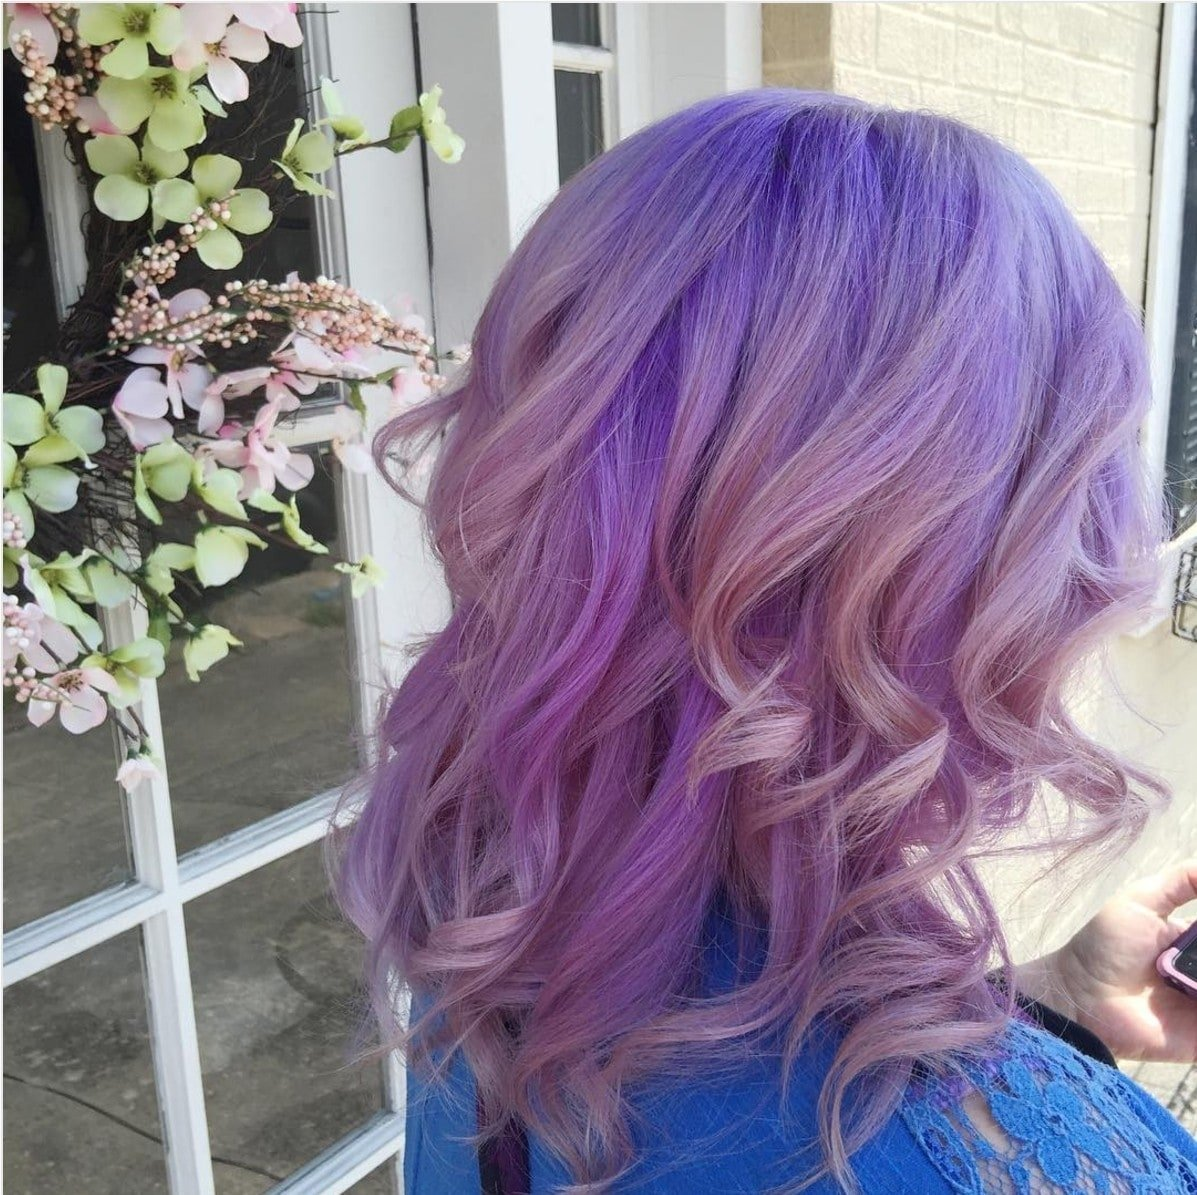 10 Wonderful Pink And Purple Hair Ideas purple hair the most stunning photos ever plus the stylists that 2020